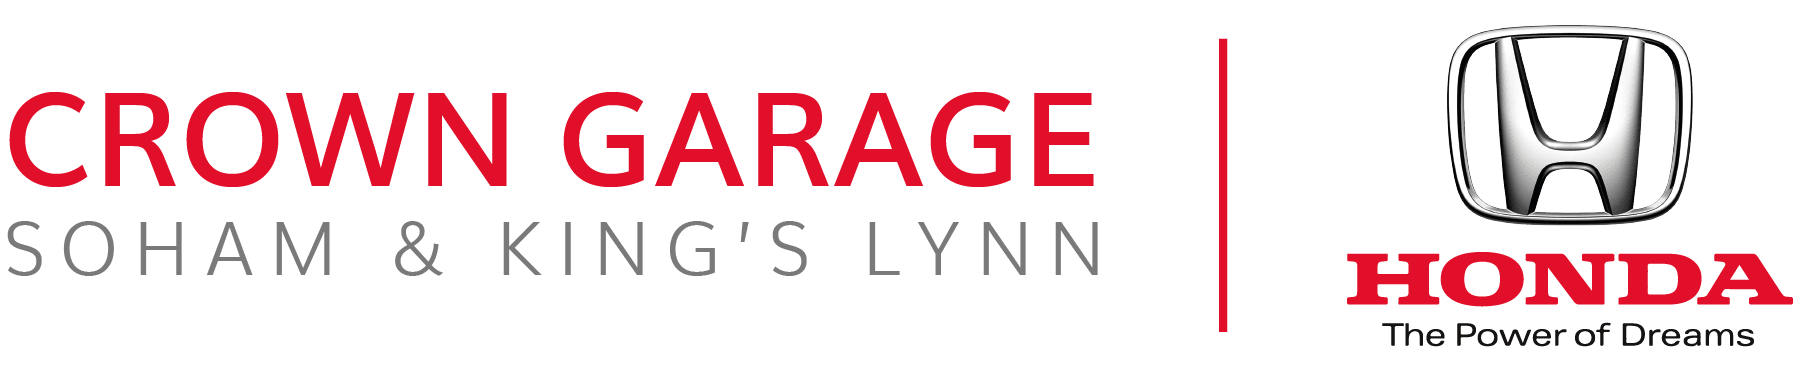 Crown Garage Honda | Honda Dealership Soham & King's Lynn